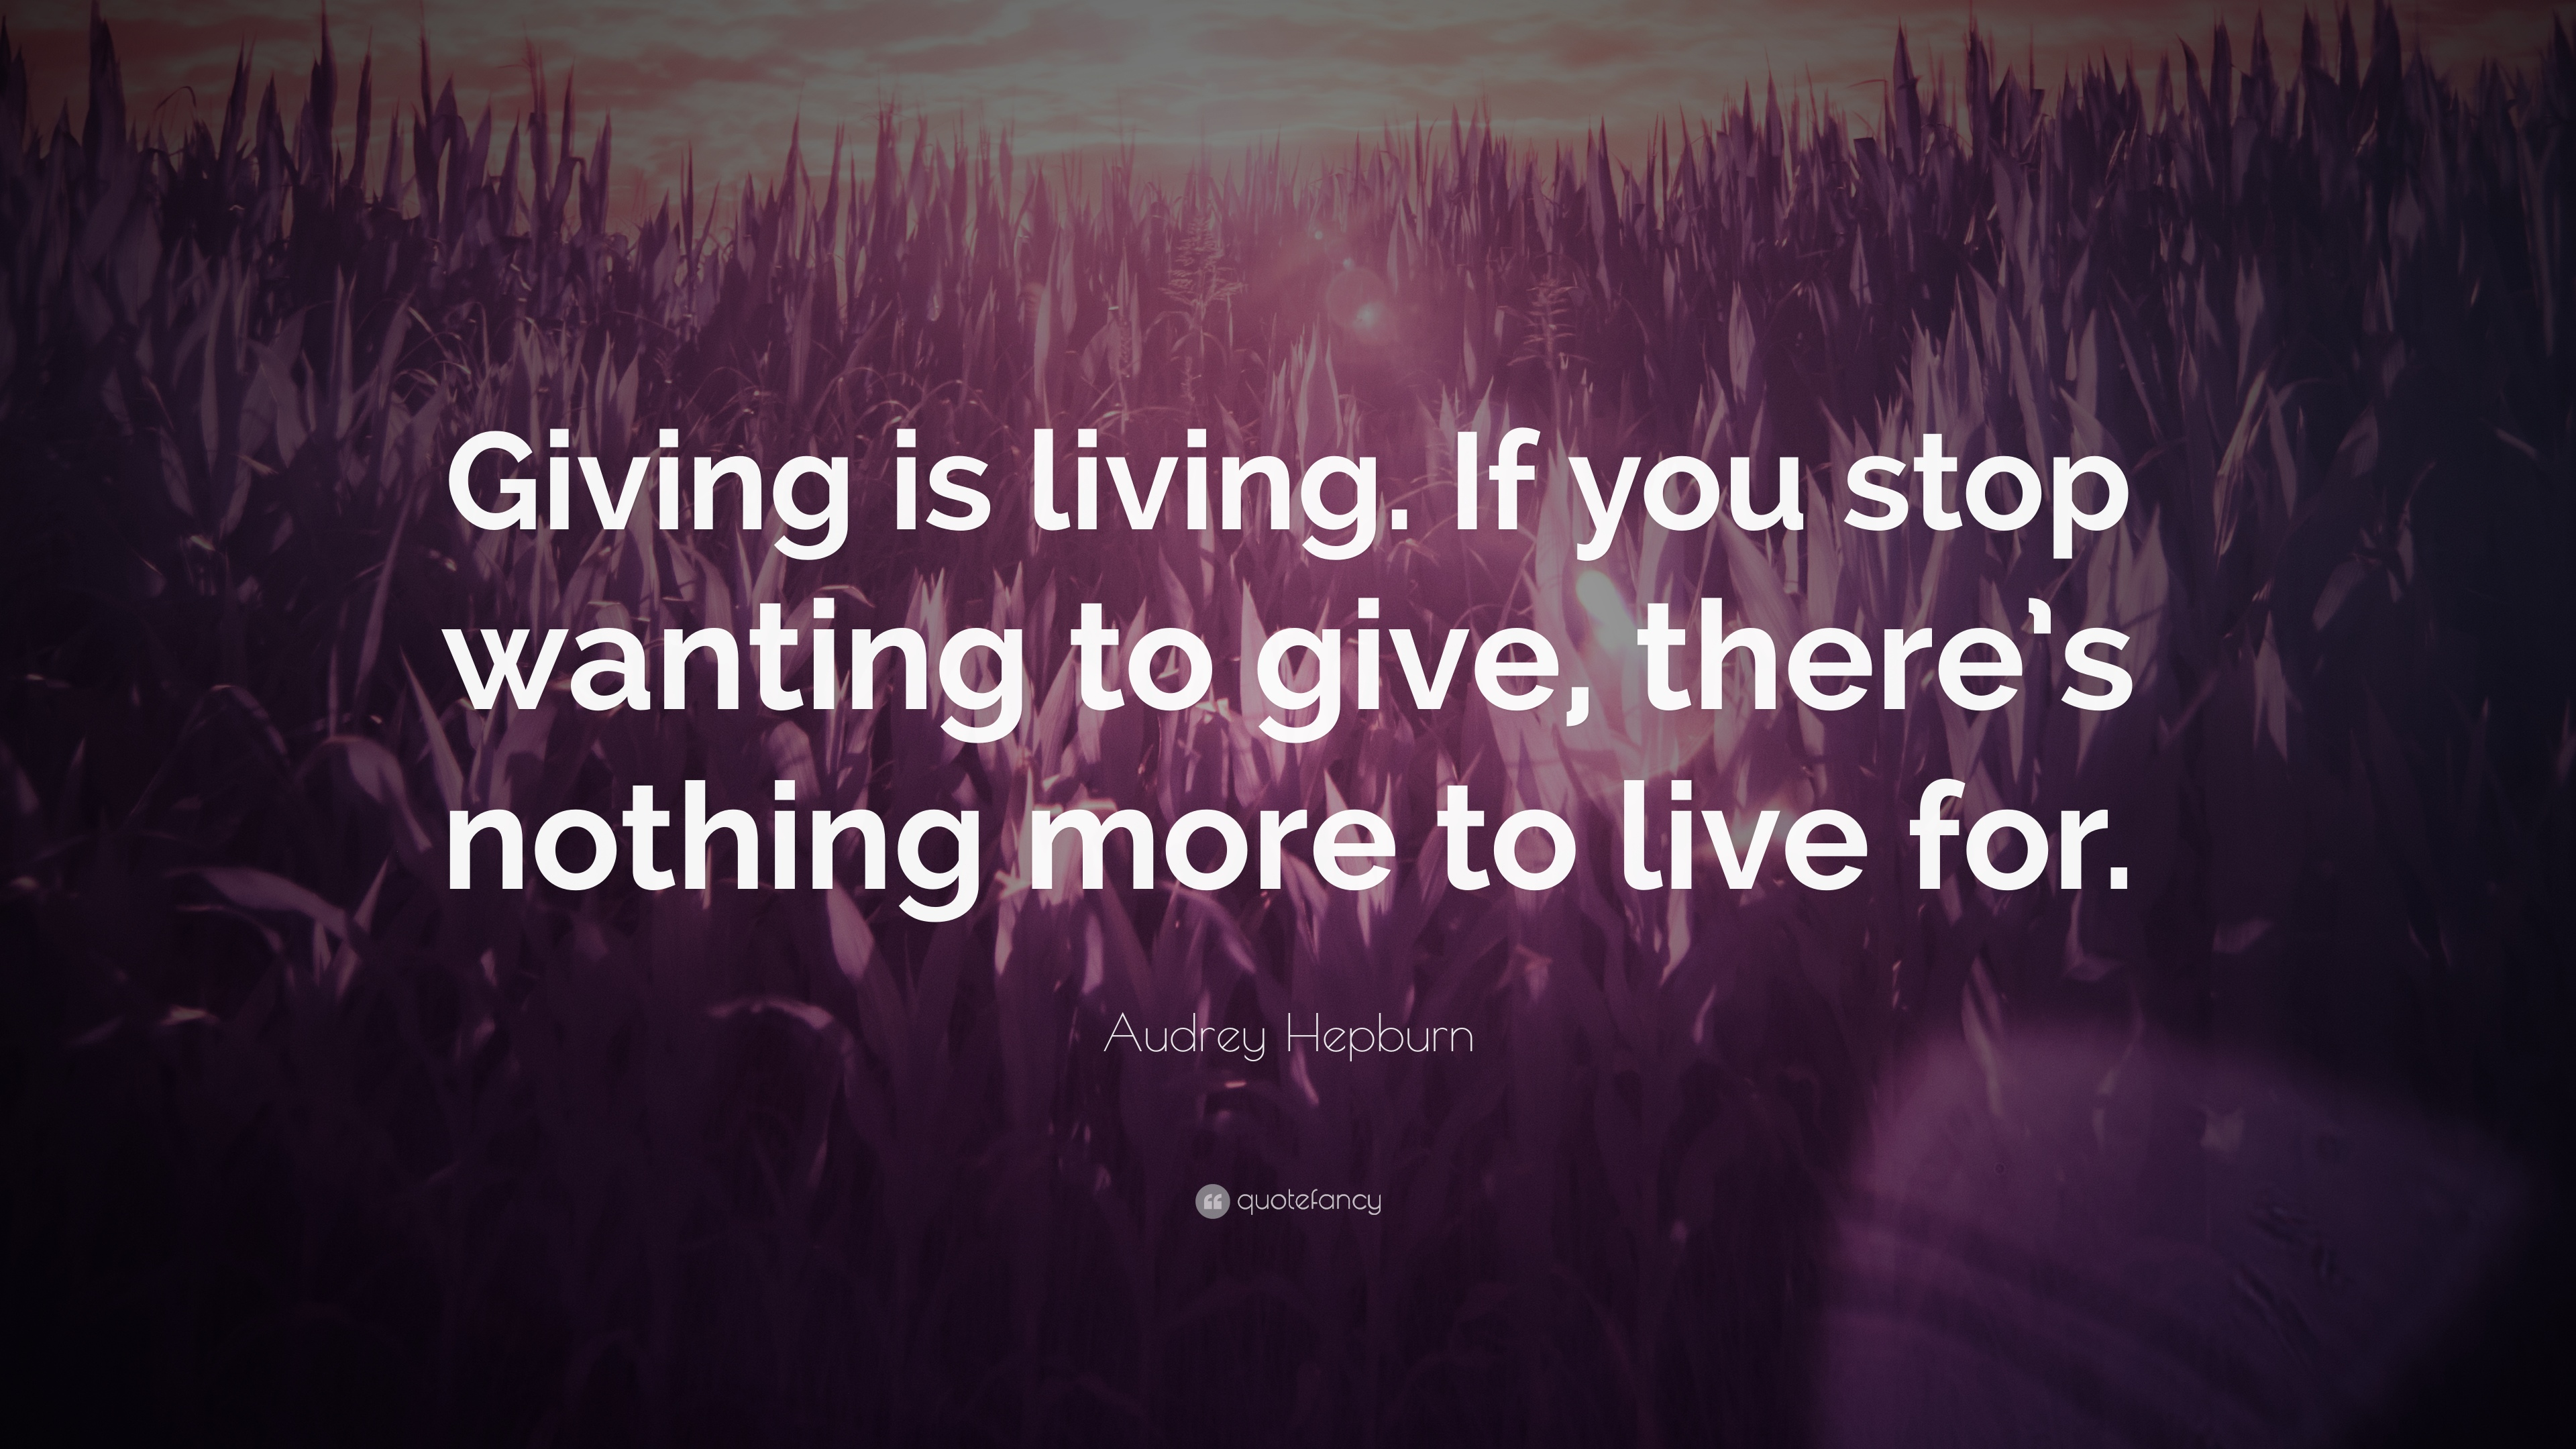 Audrey Hepburn Quote Giving Is Living If You Stop Wanting To Give